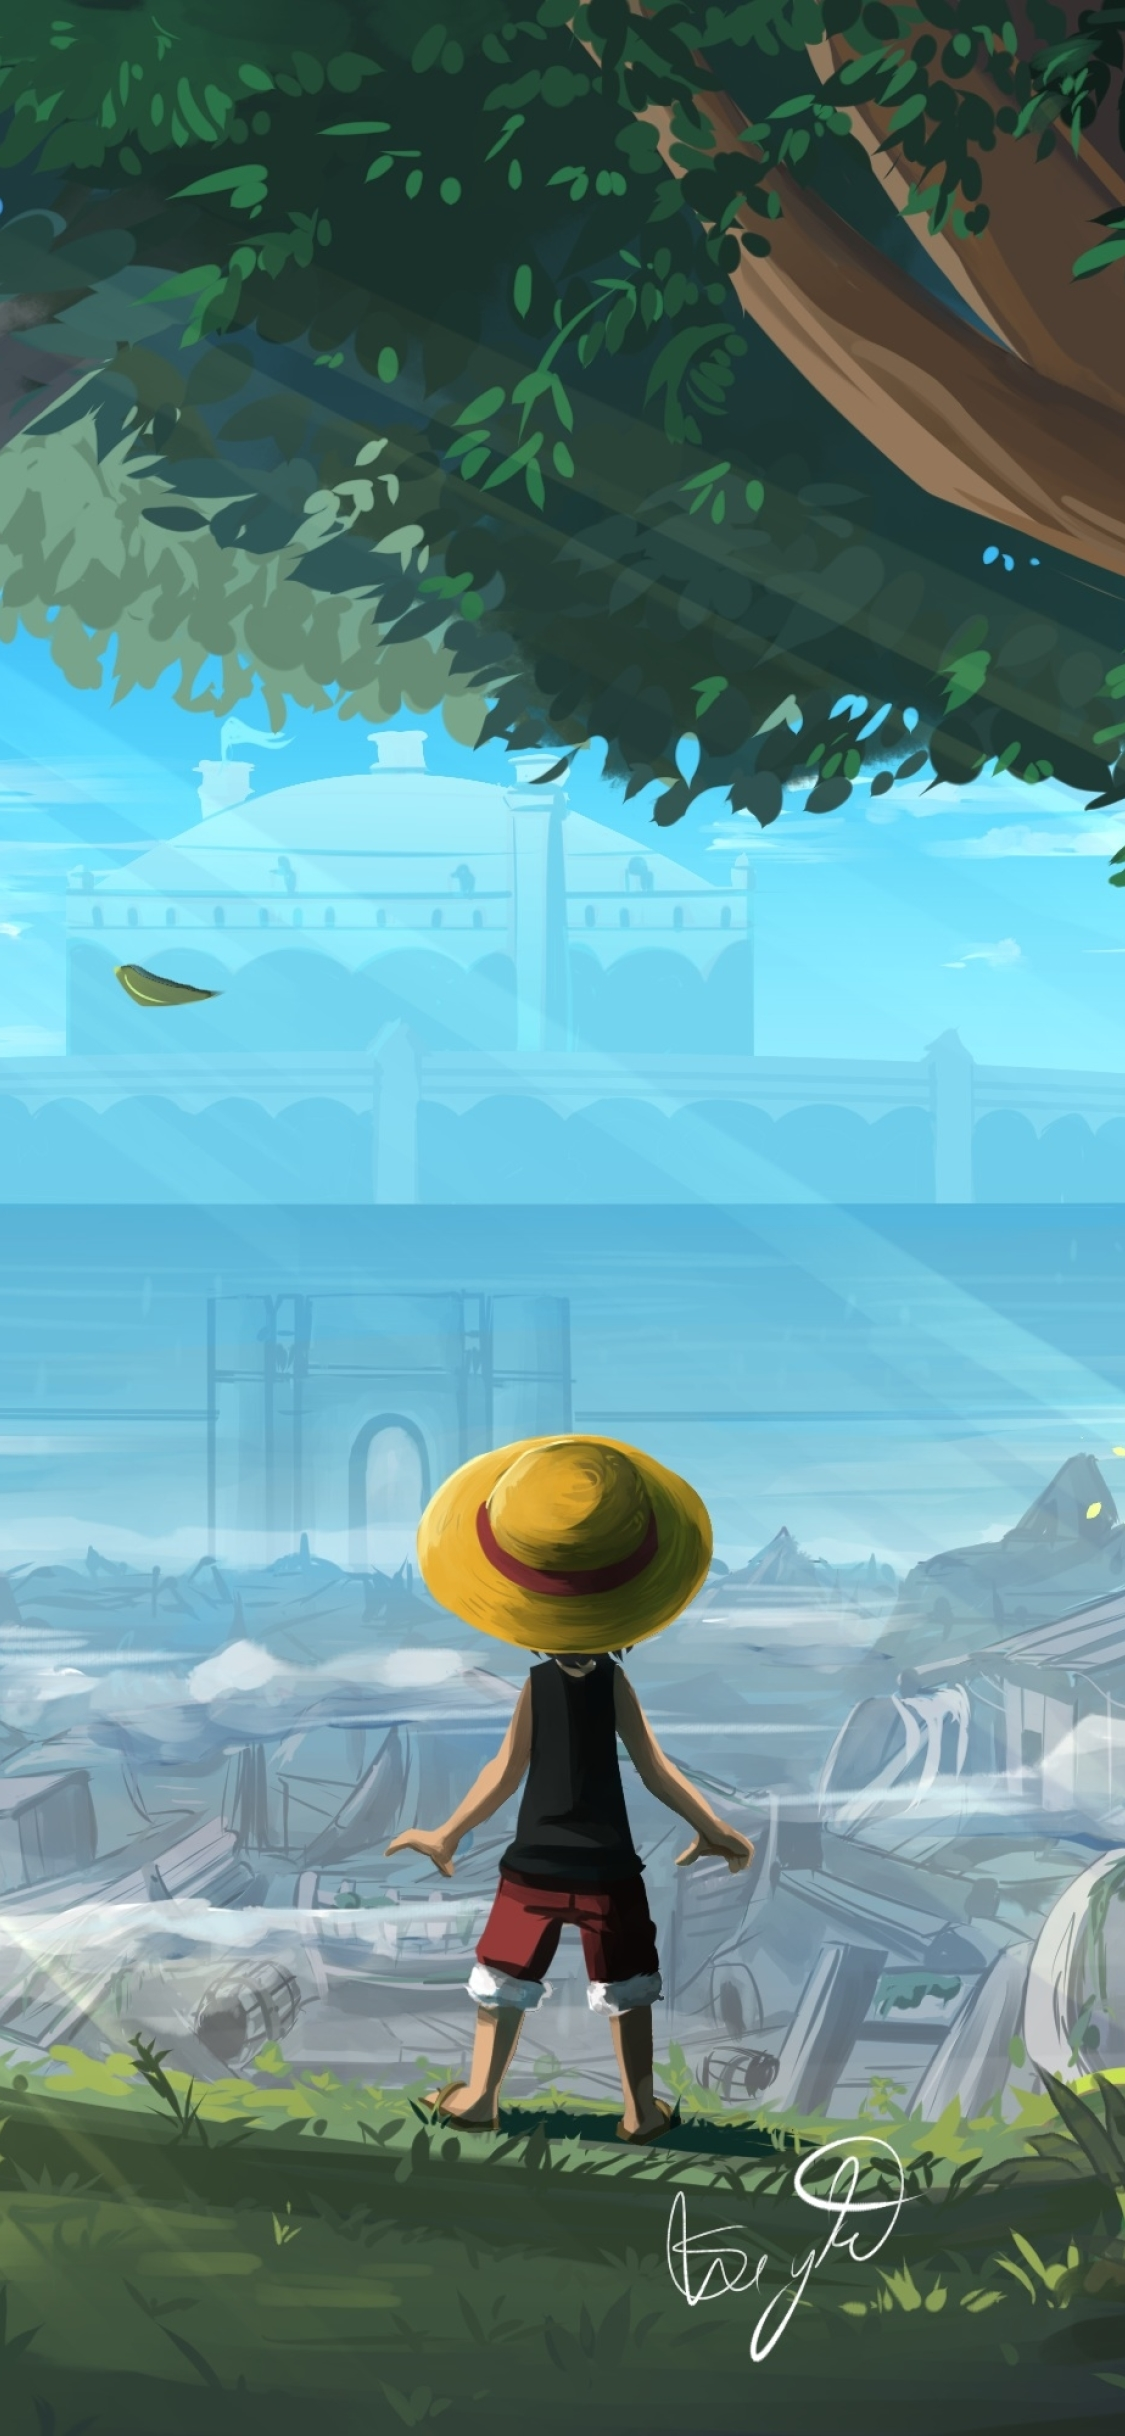 1125x2436 Monkey D Luffy One Piece Art Iphone Xs Iphone 10 Iphone X Wallpaper Hd Artist 4k Wallpapers Images Photos And Background